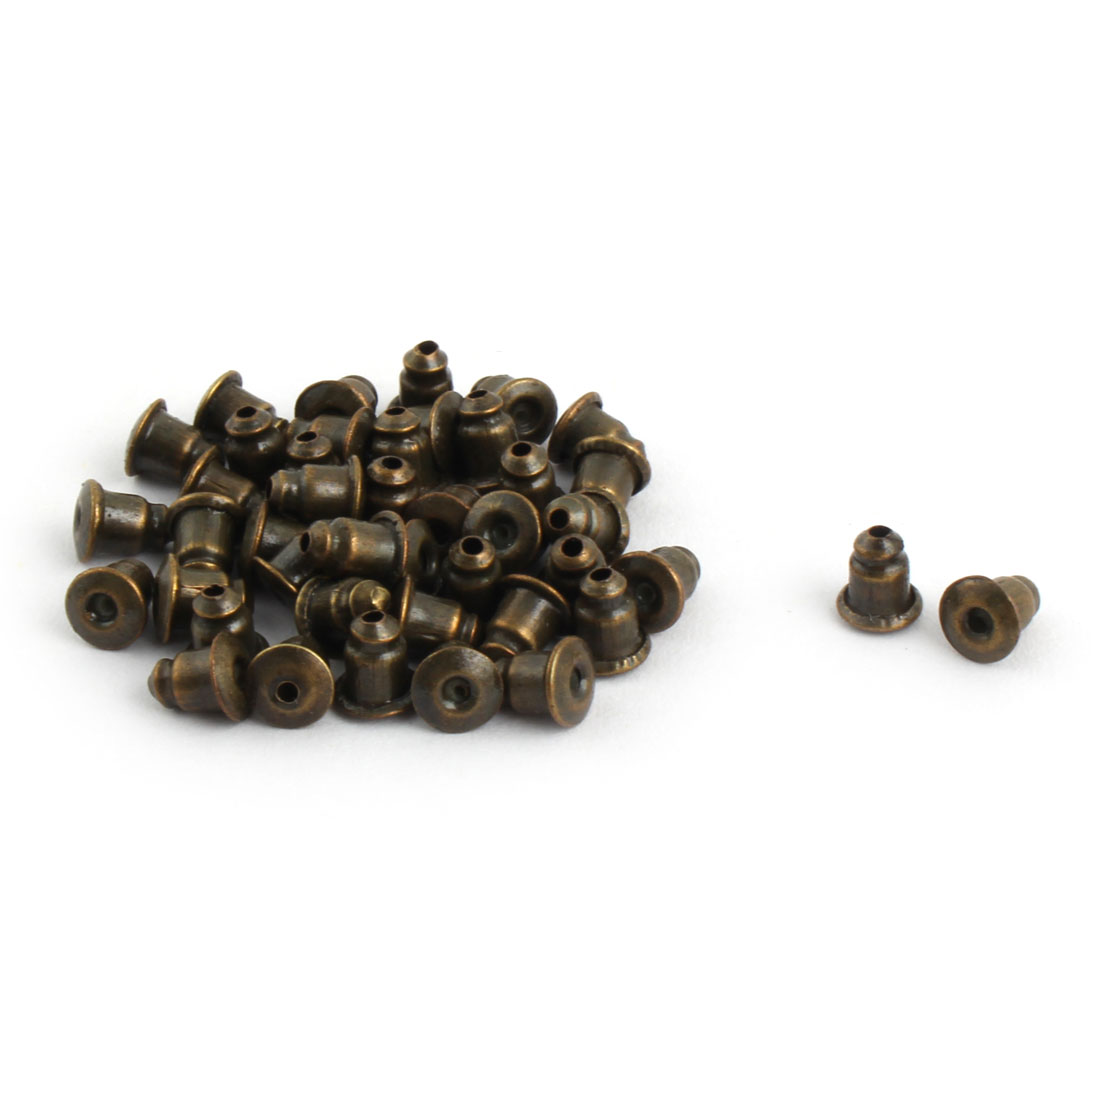 Ladies Metal Earring Backs Clasps Stoppers Accessory Bronze Tone 40pcs